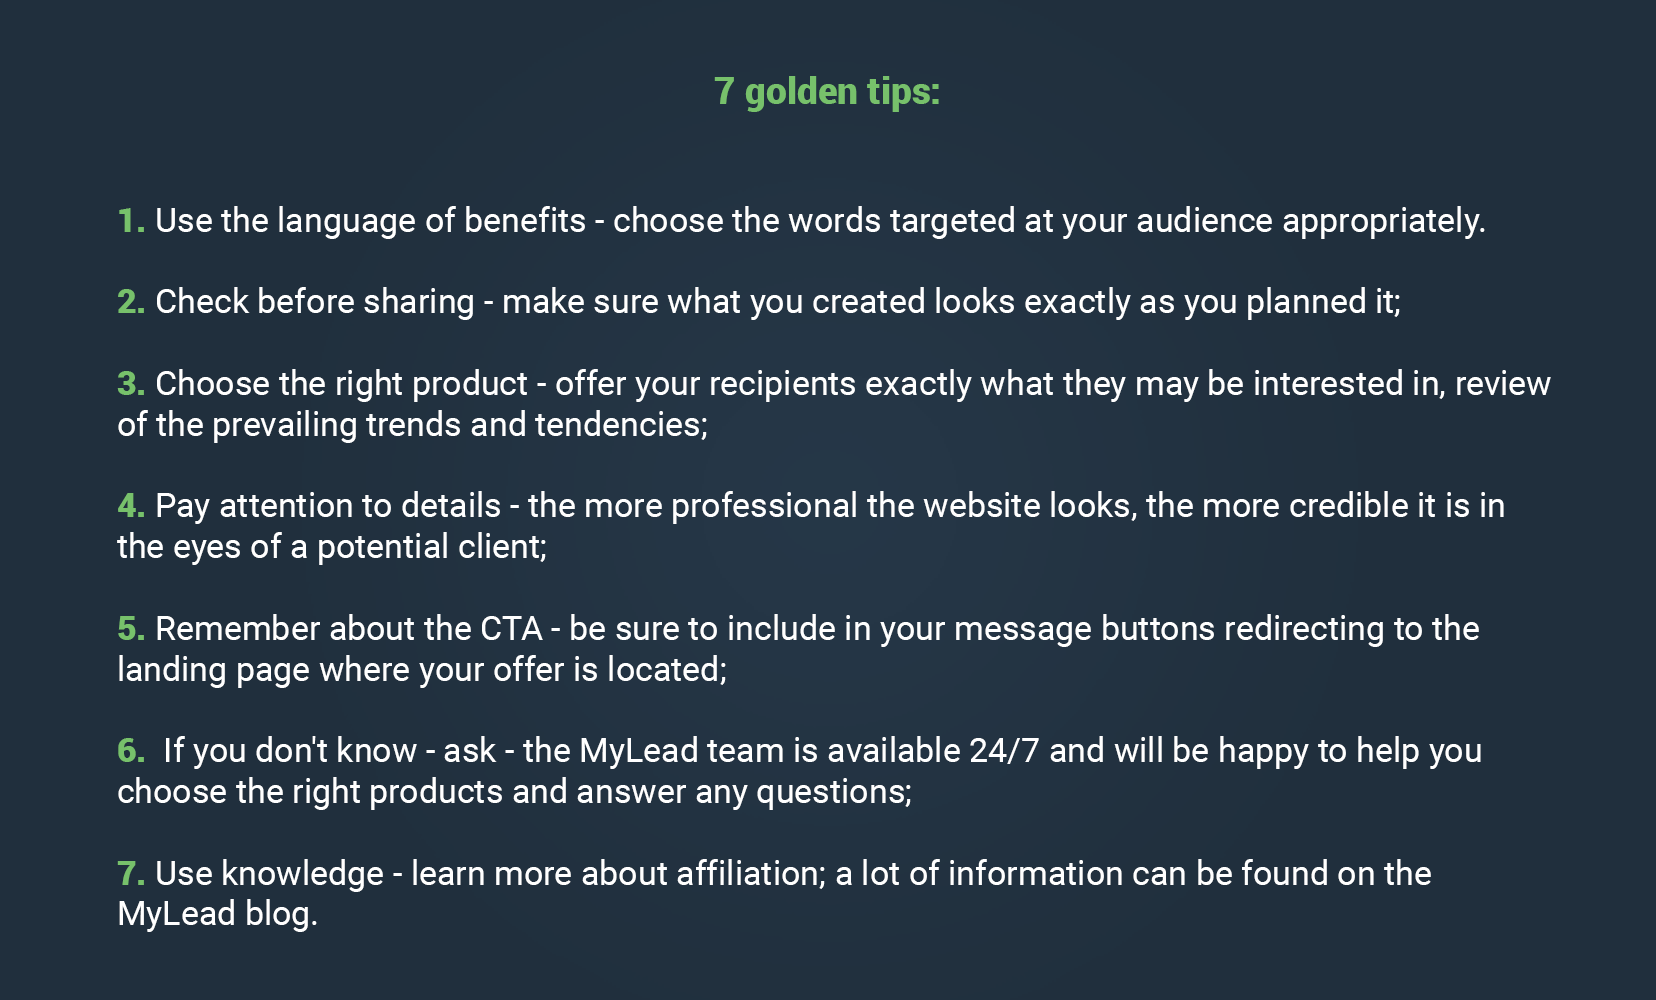 Golden tips about Content Lockers